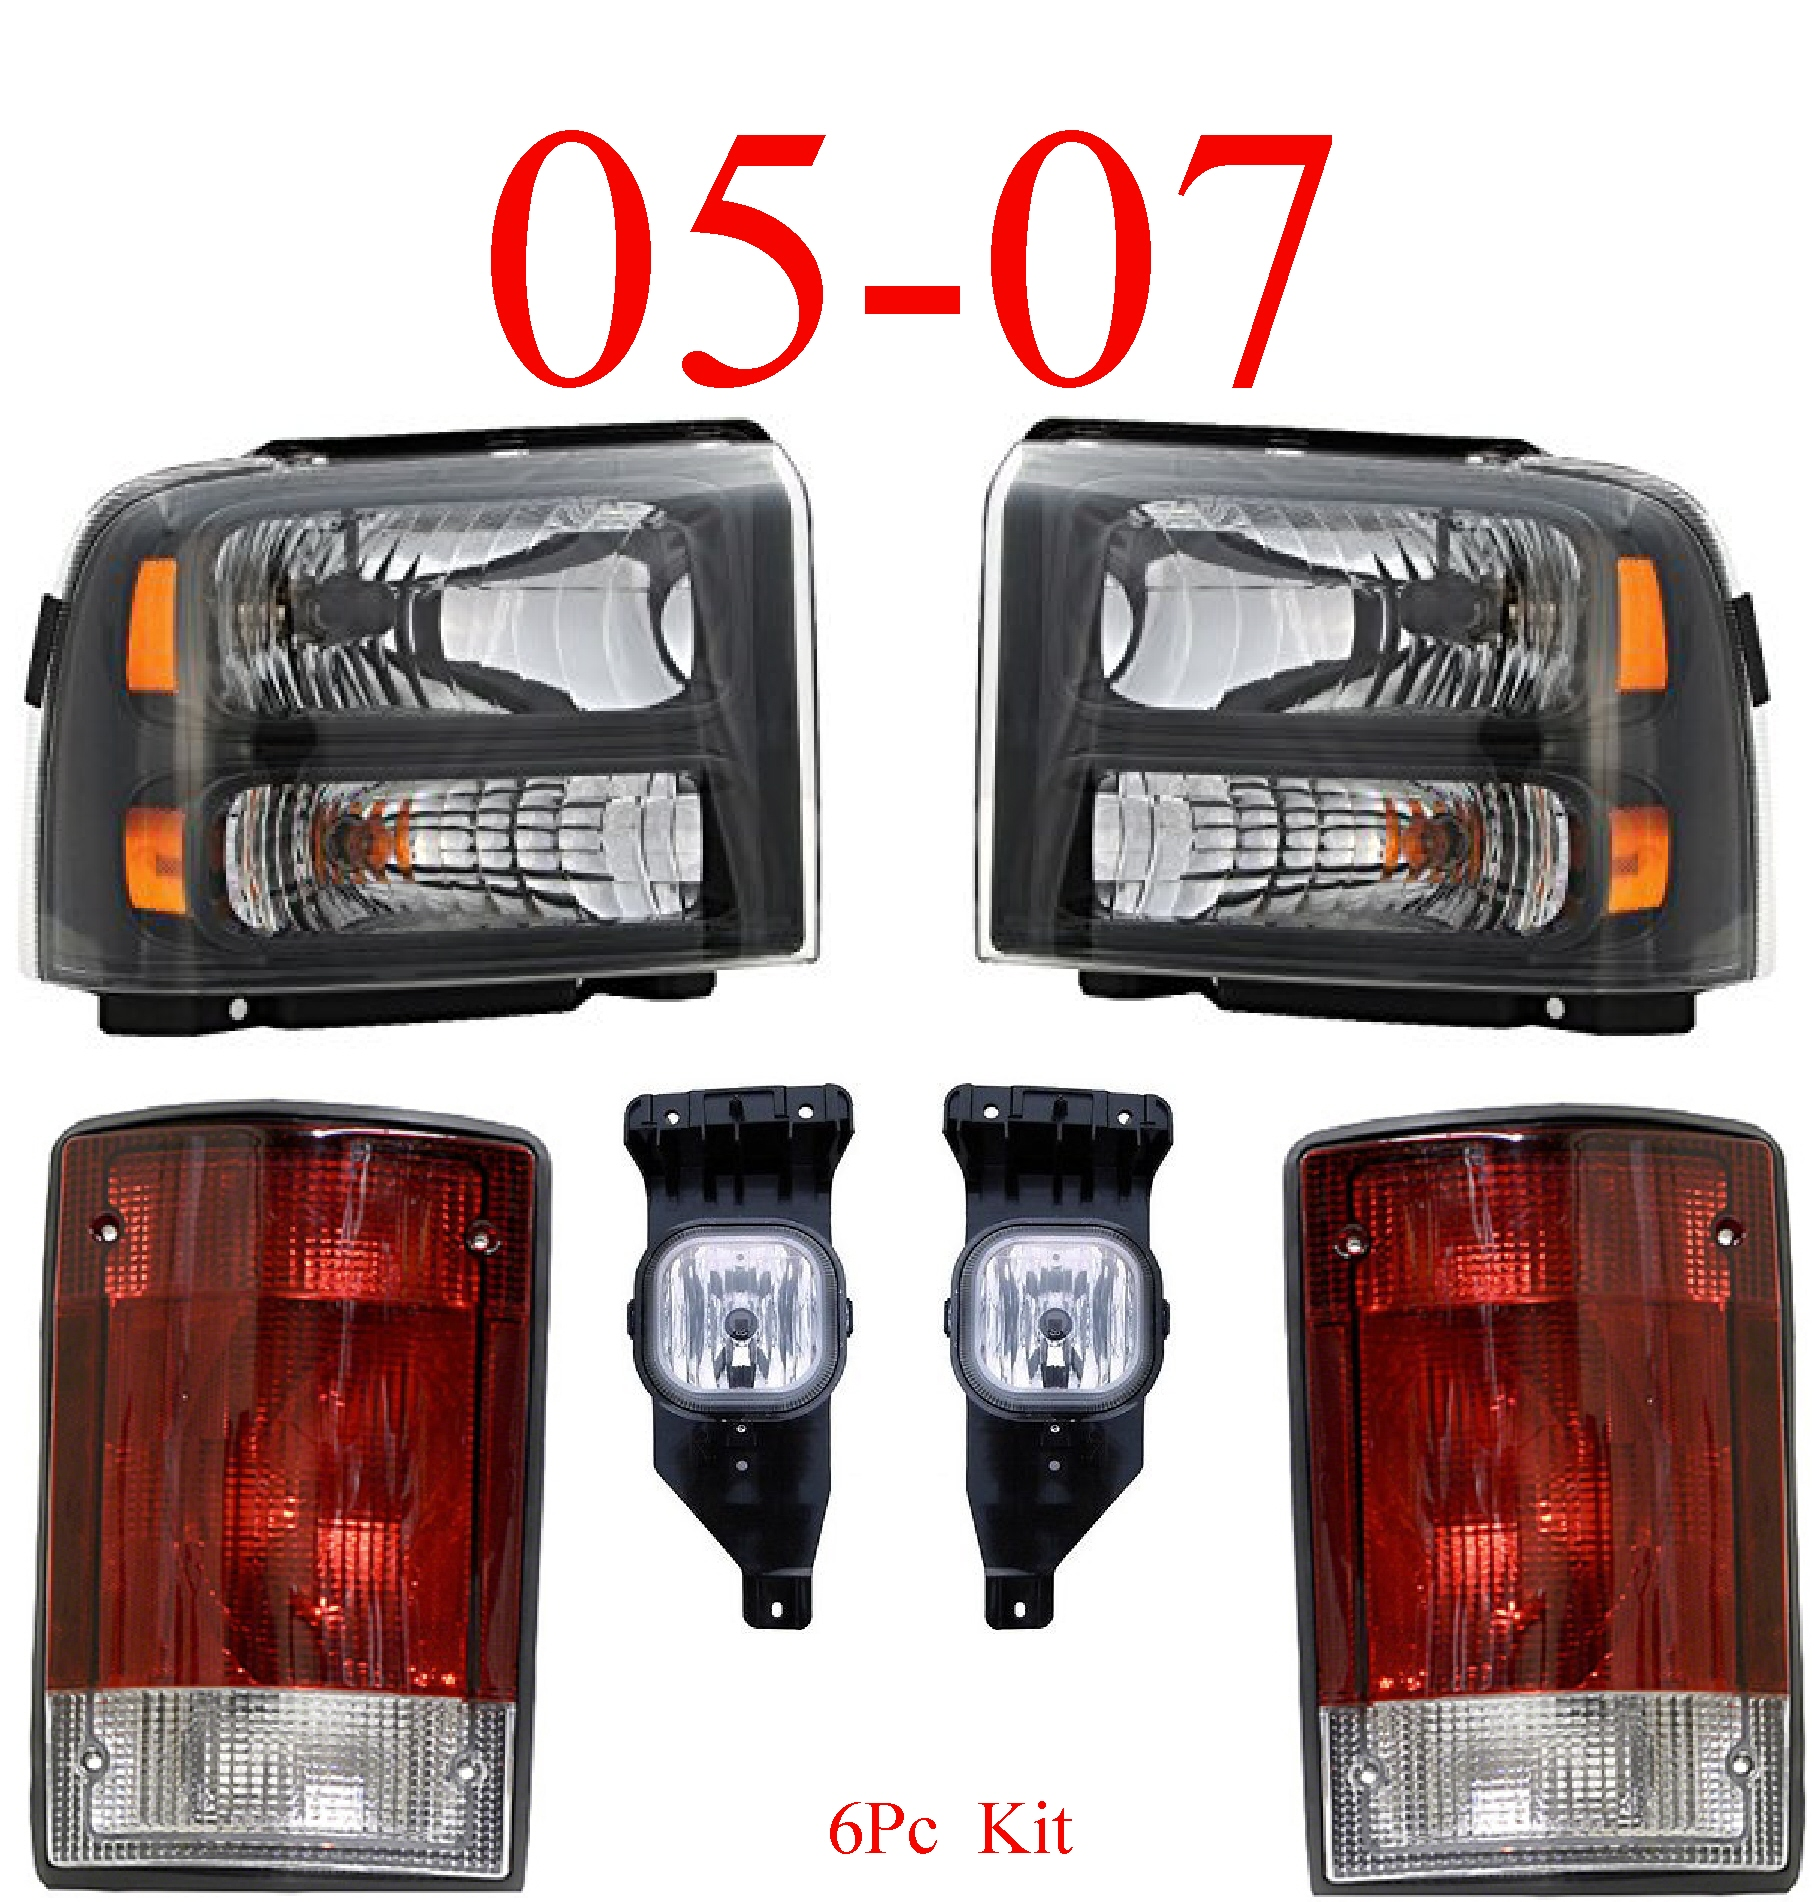 05 Ford Excursion 6Pc Head, Fog & Tail Light Kit Harley Davidson